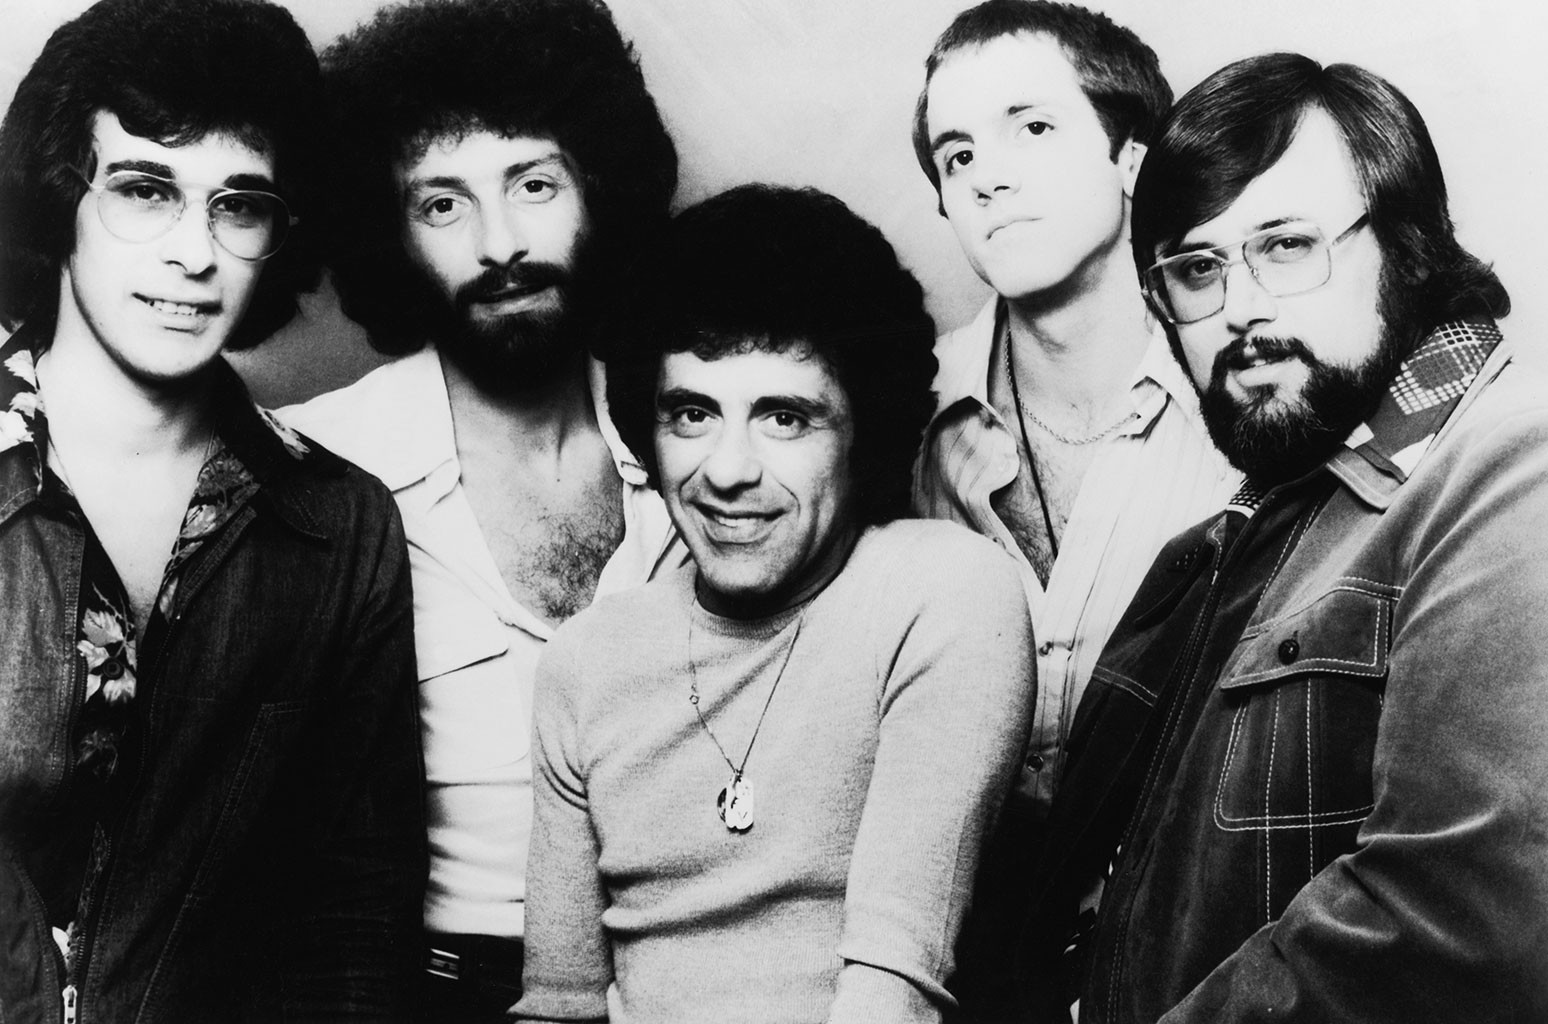 Frankie Valli (centre) with a late line up of The Four Seasons vocal group, circa 1975.